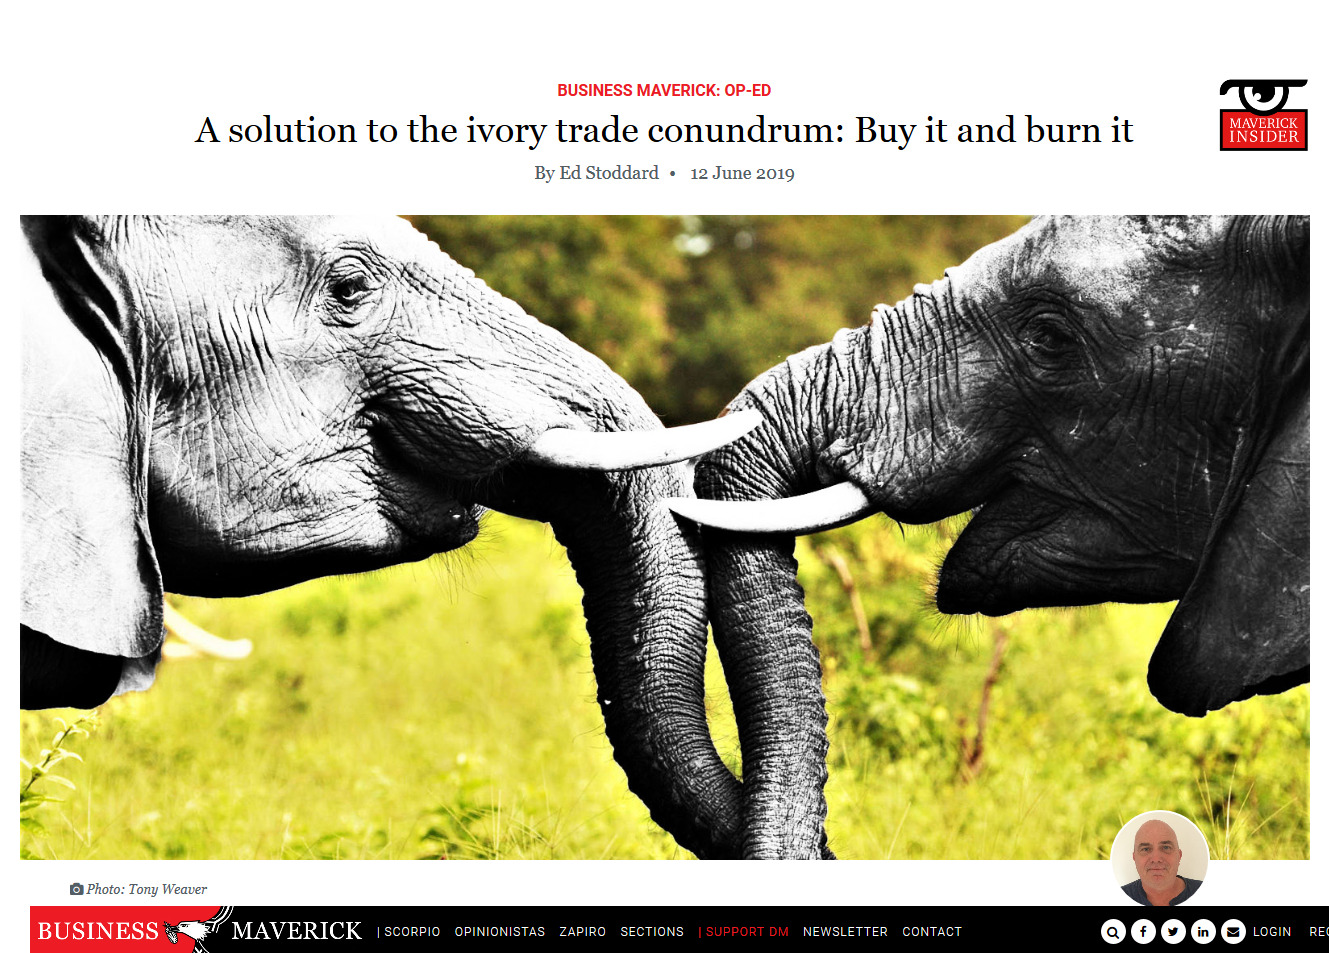 Screenshot_2019-06-21 A solution to the ivory trade conundrum Buy it and burn it.jpg